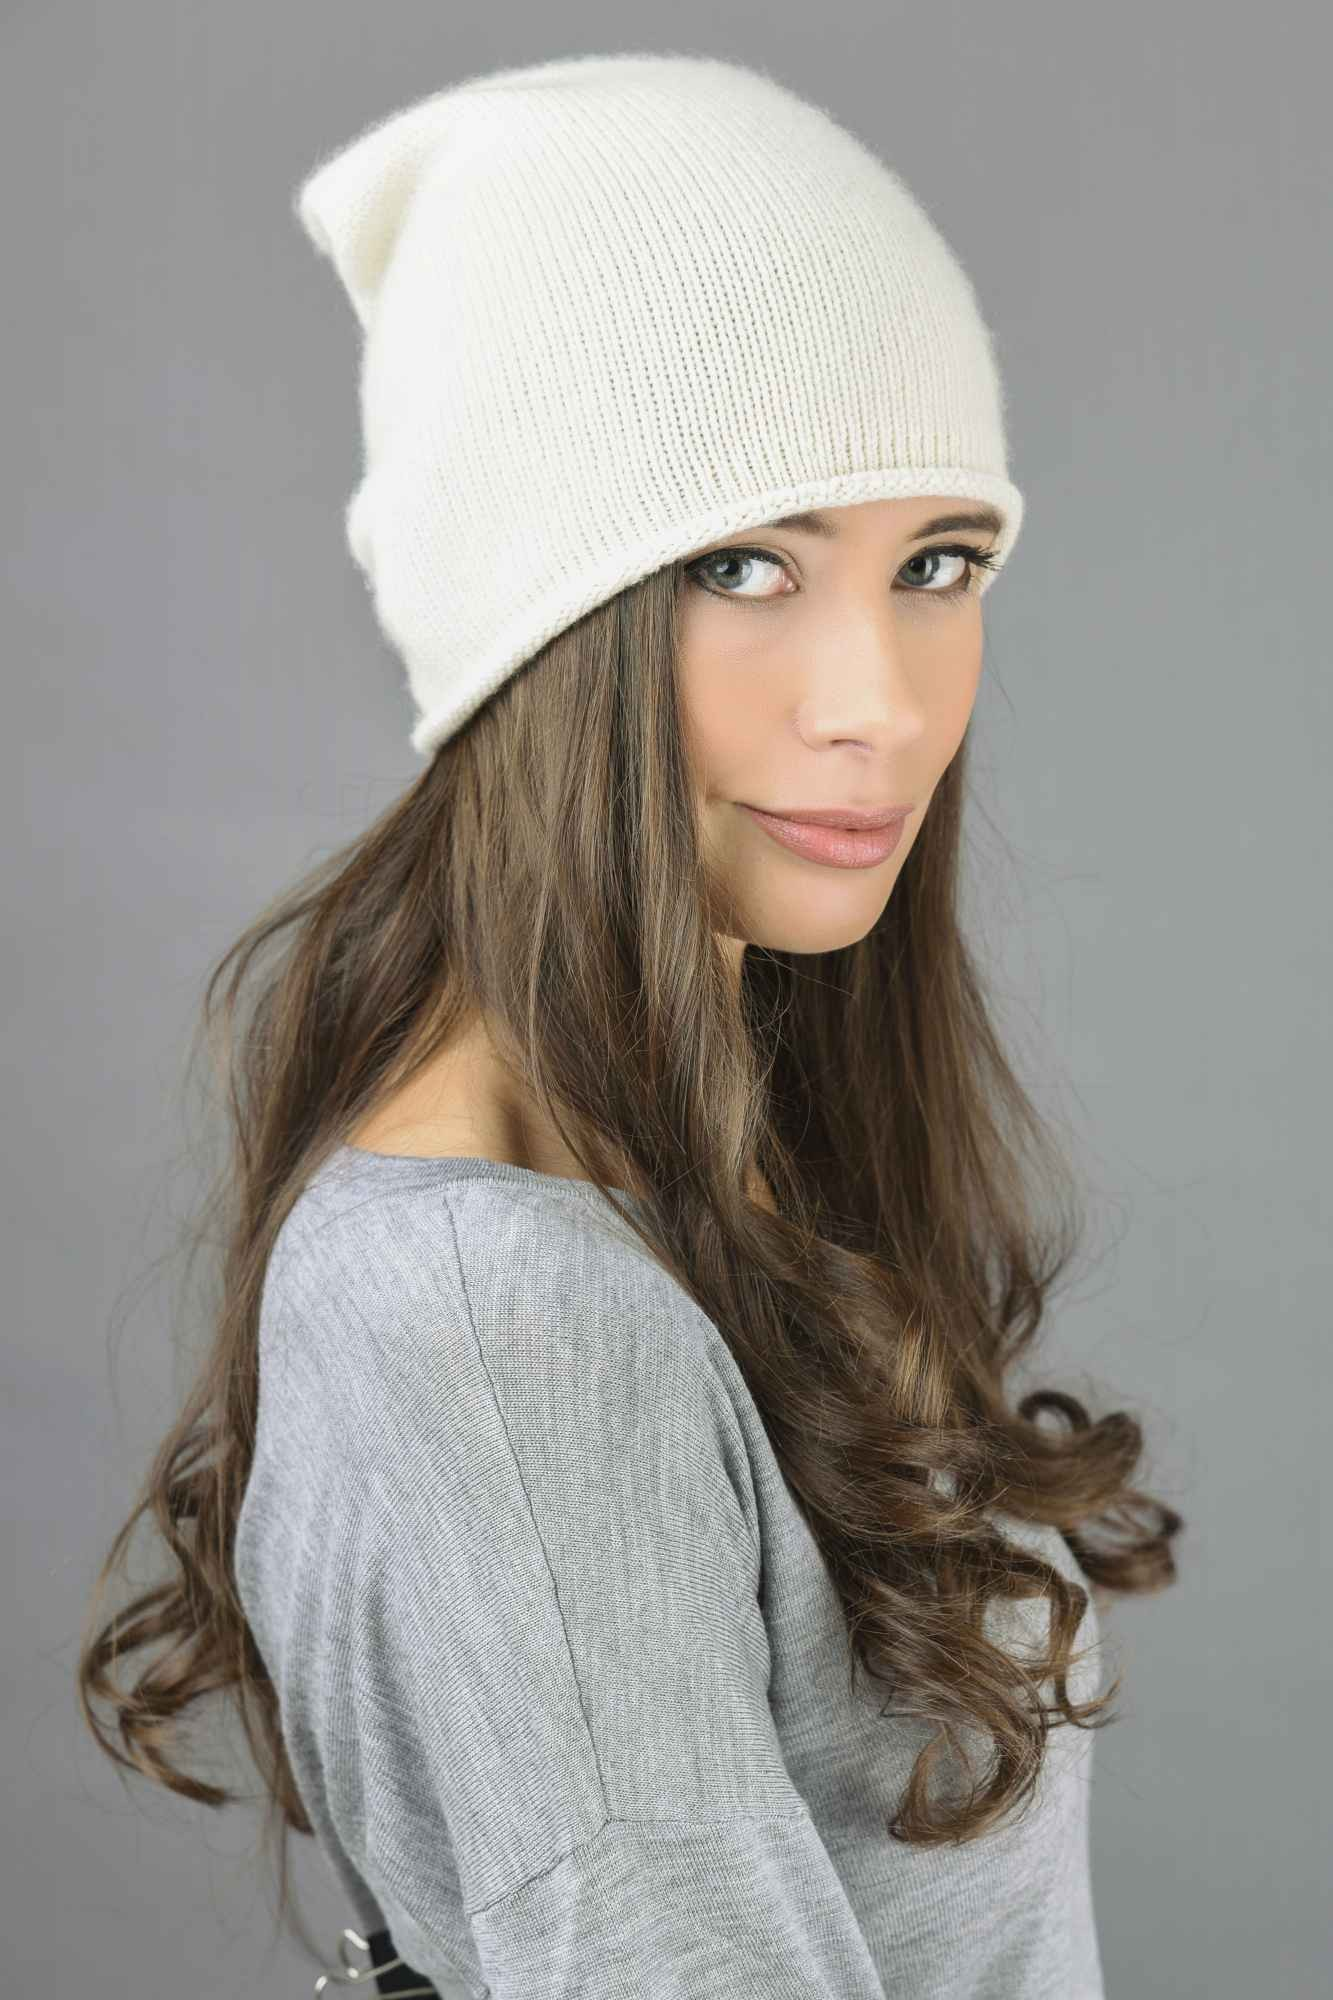 Pure Cashmere Plain Knitted Slouchy Beanie Hat in Cream White ... 5b85ab2c547